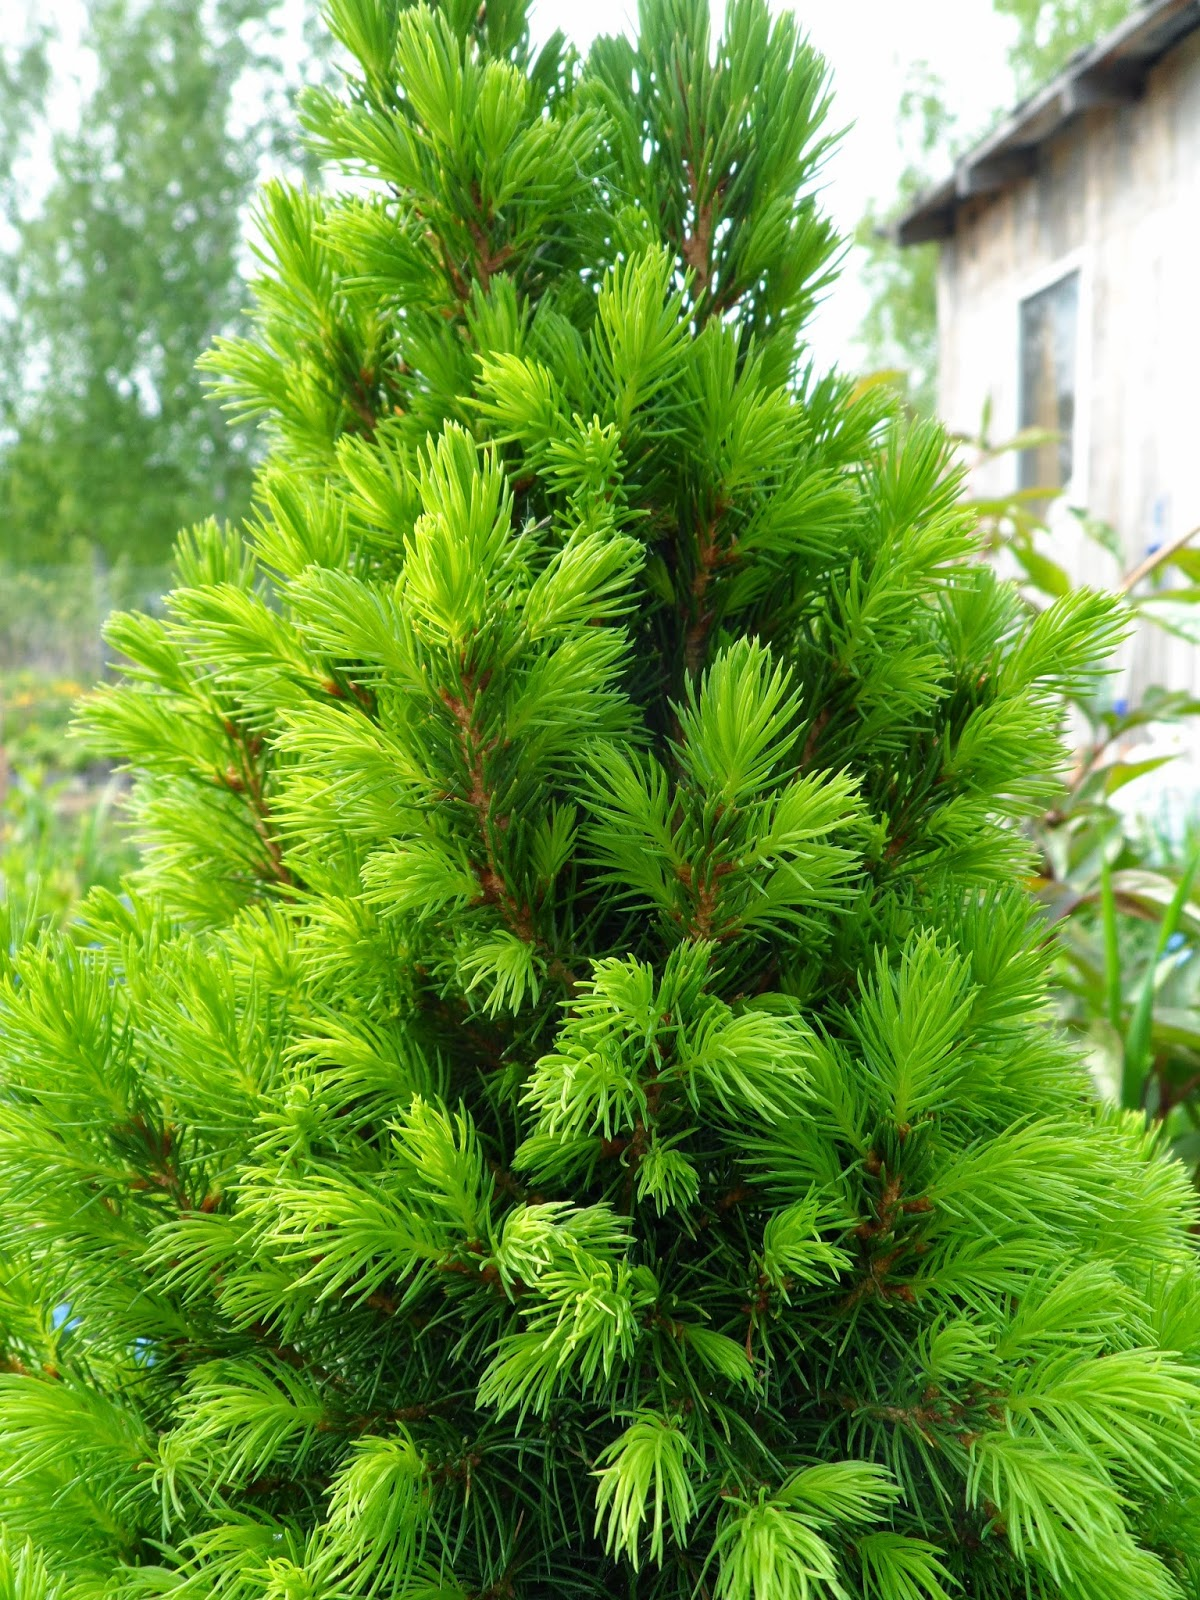 Helen Fir-tree природа май 2014 года Nature in May 2014